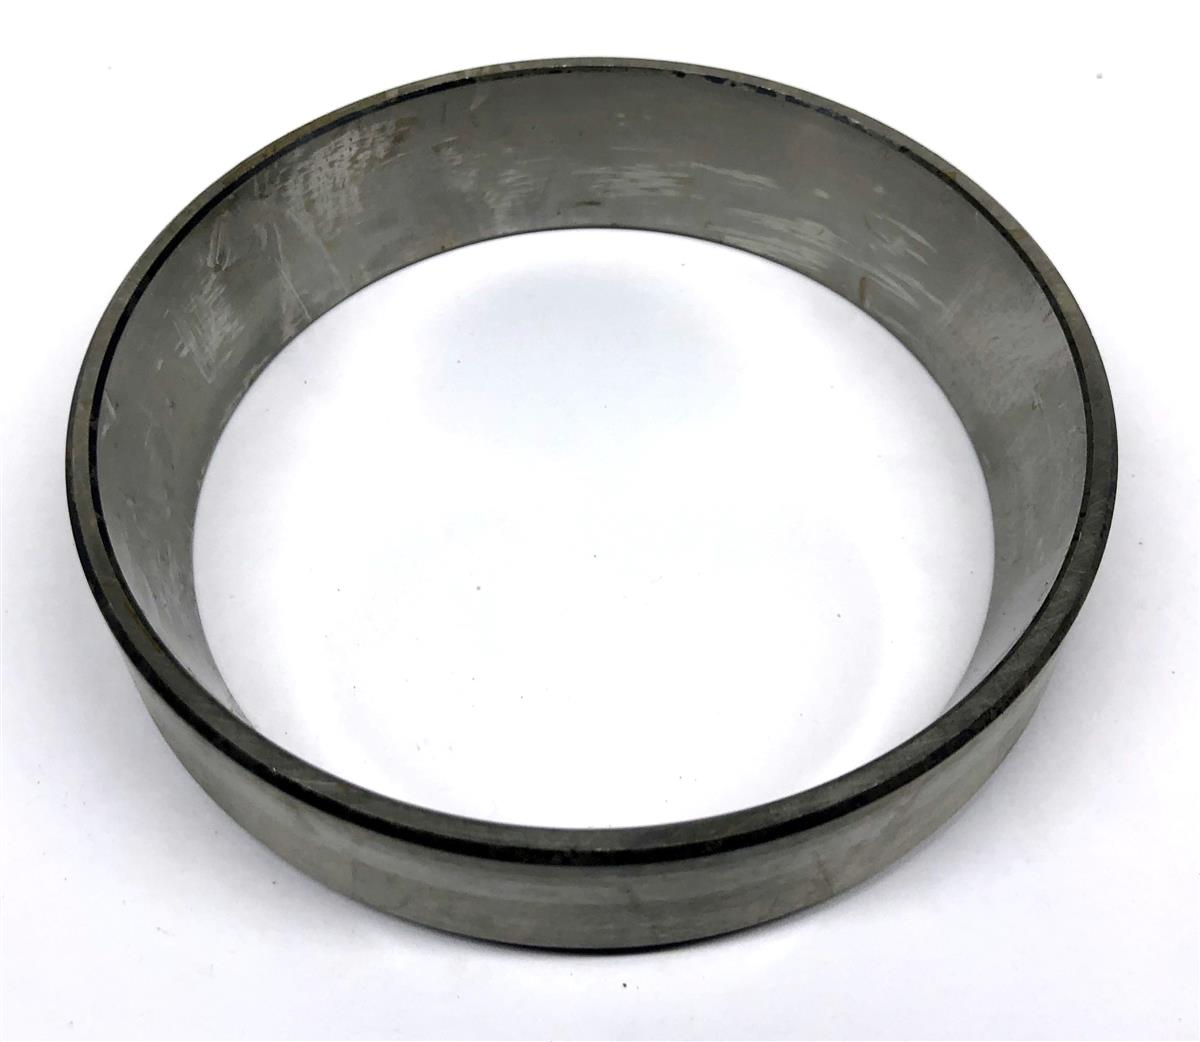 9M-1075 | 9M-1075 Transfer Case Output Shaft Roller Bearing Cup Race (1).JPG